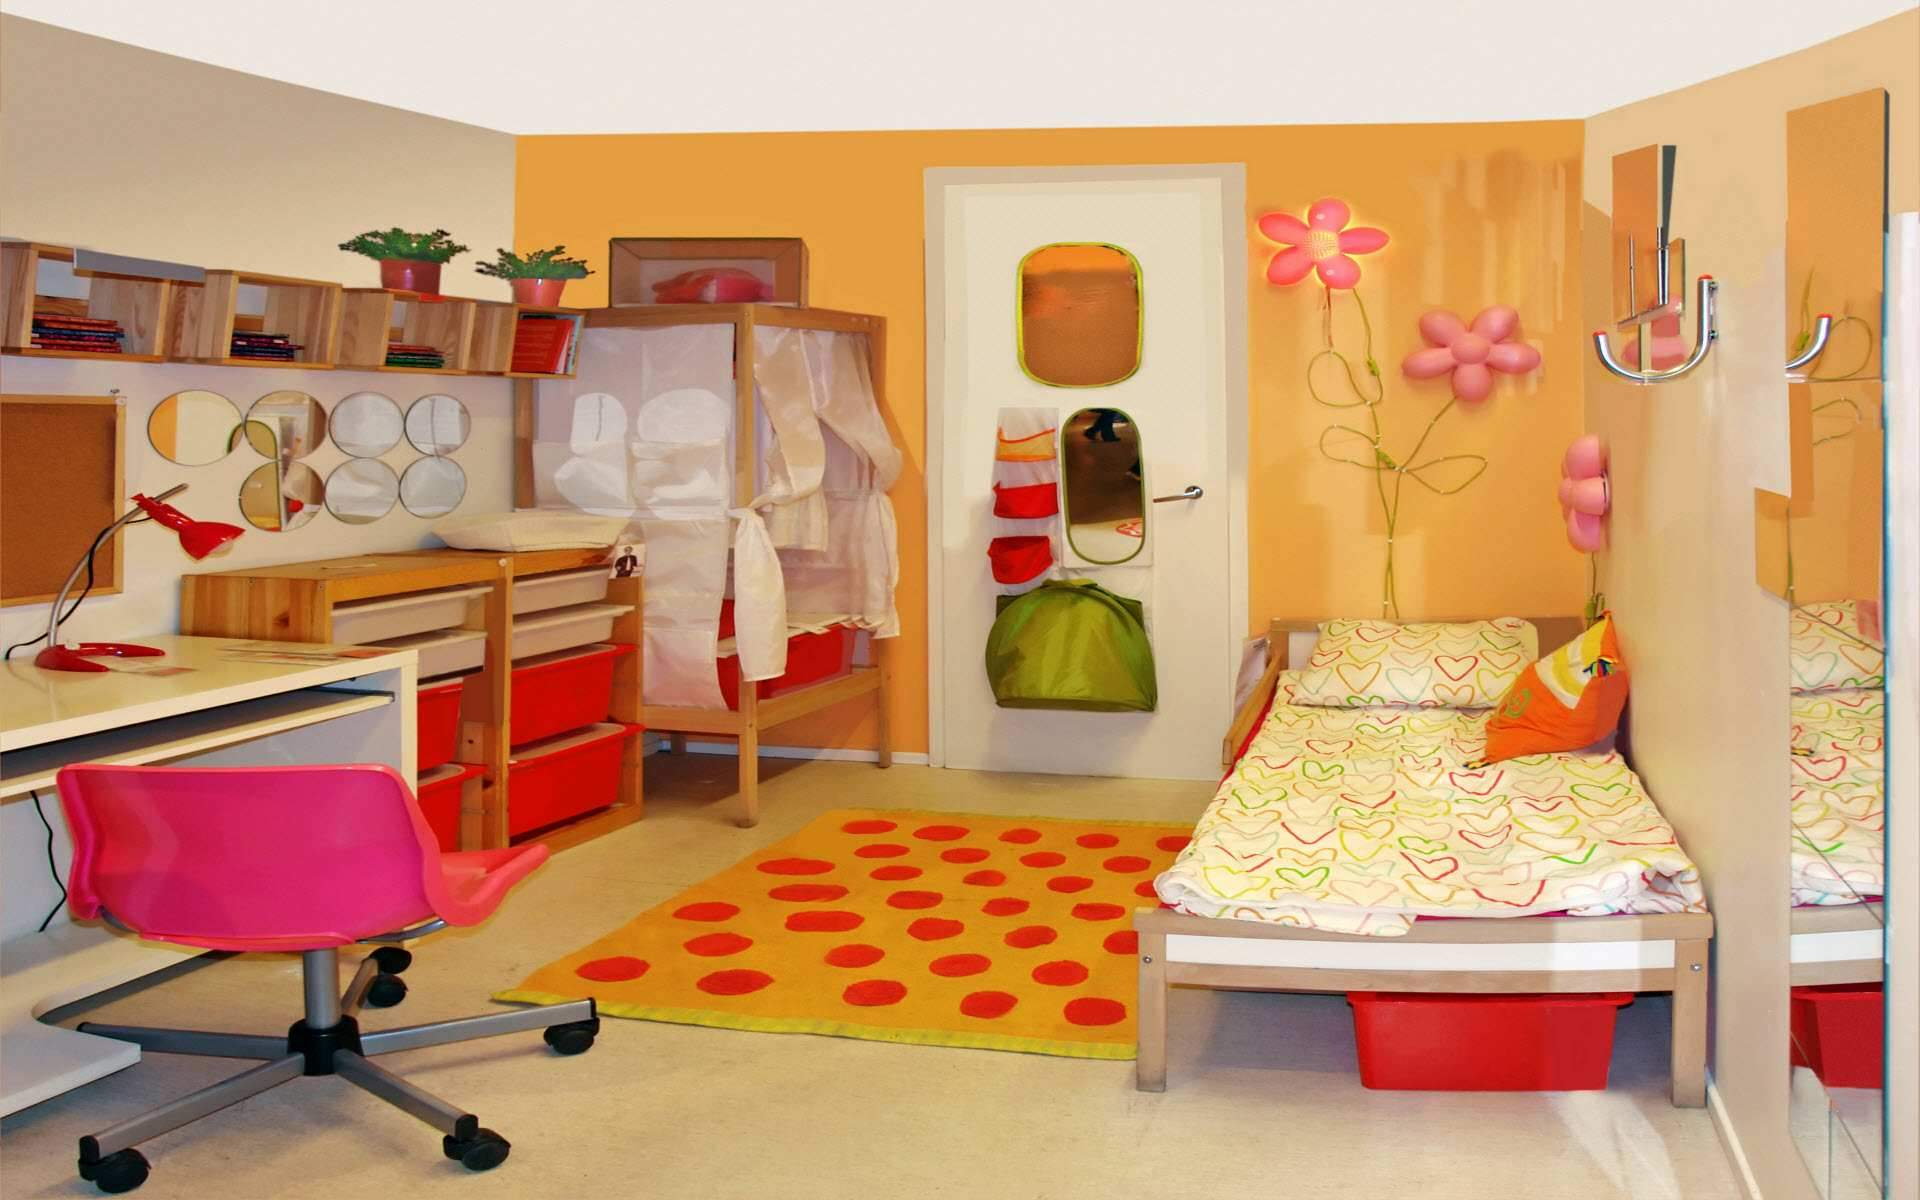 Kids room decorating ideas design ideas for kids rooms space saving long hairstyles - Space saving ideas for small apartment plan ...